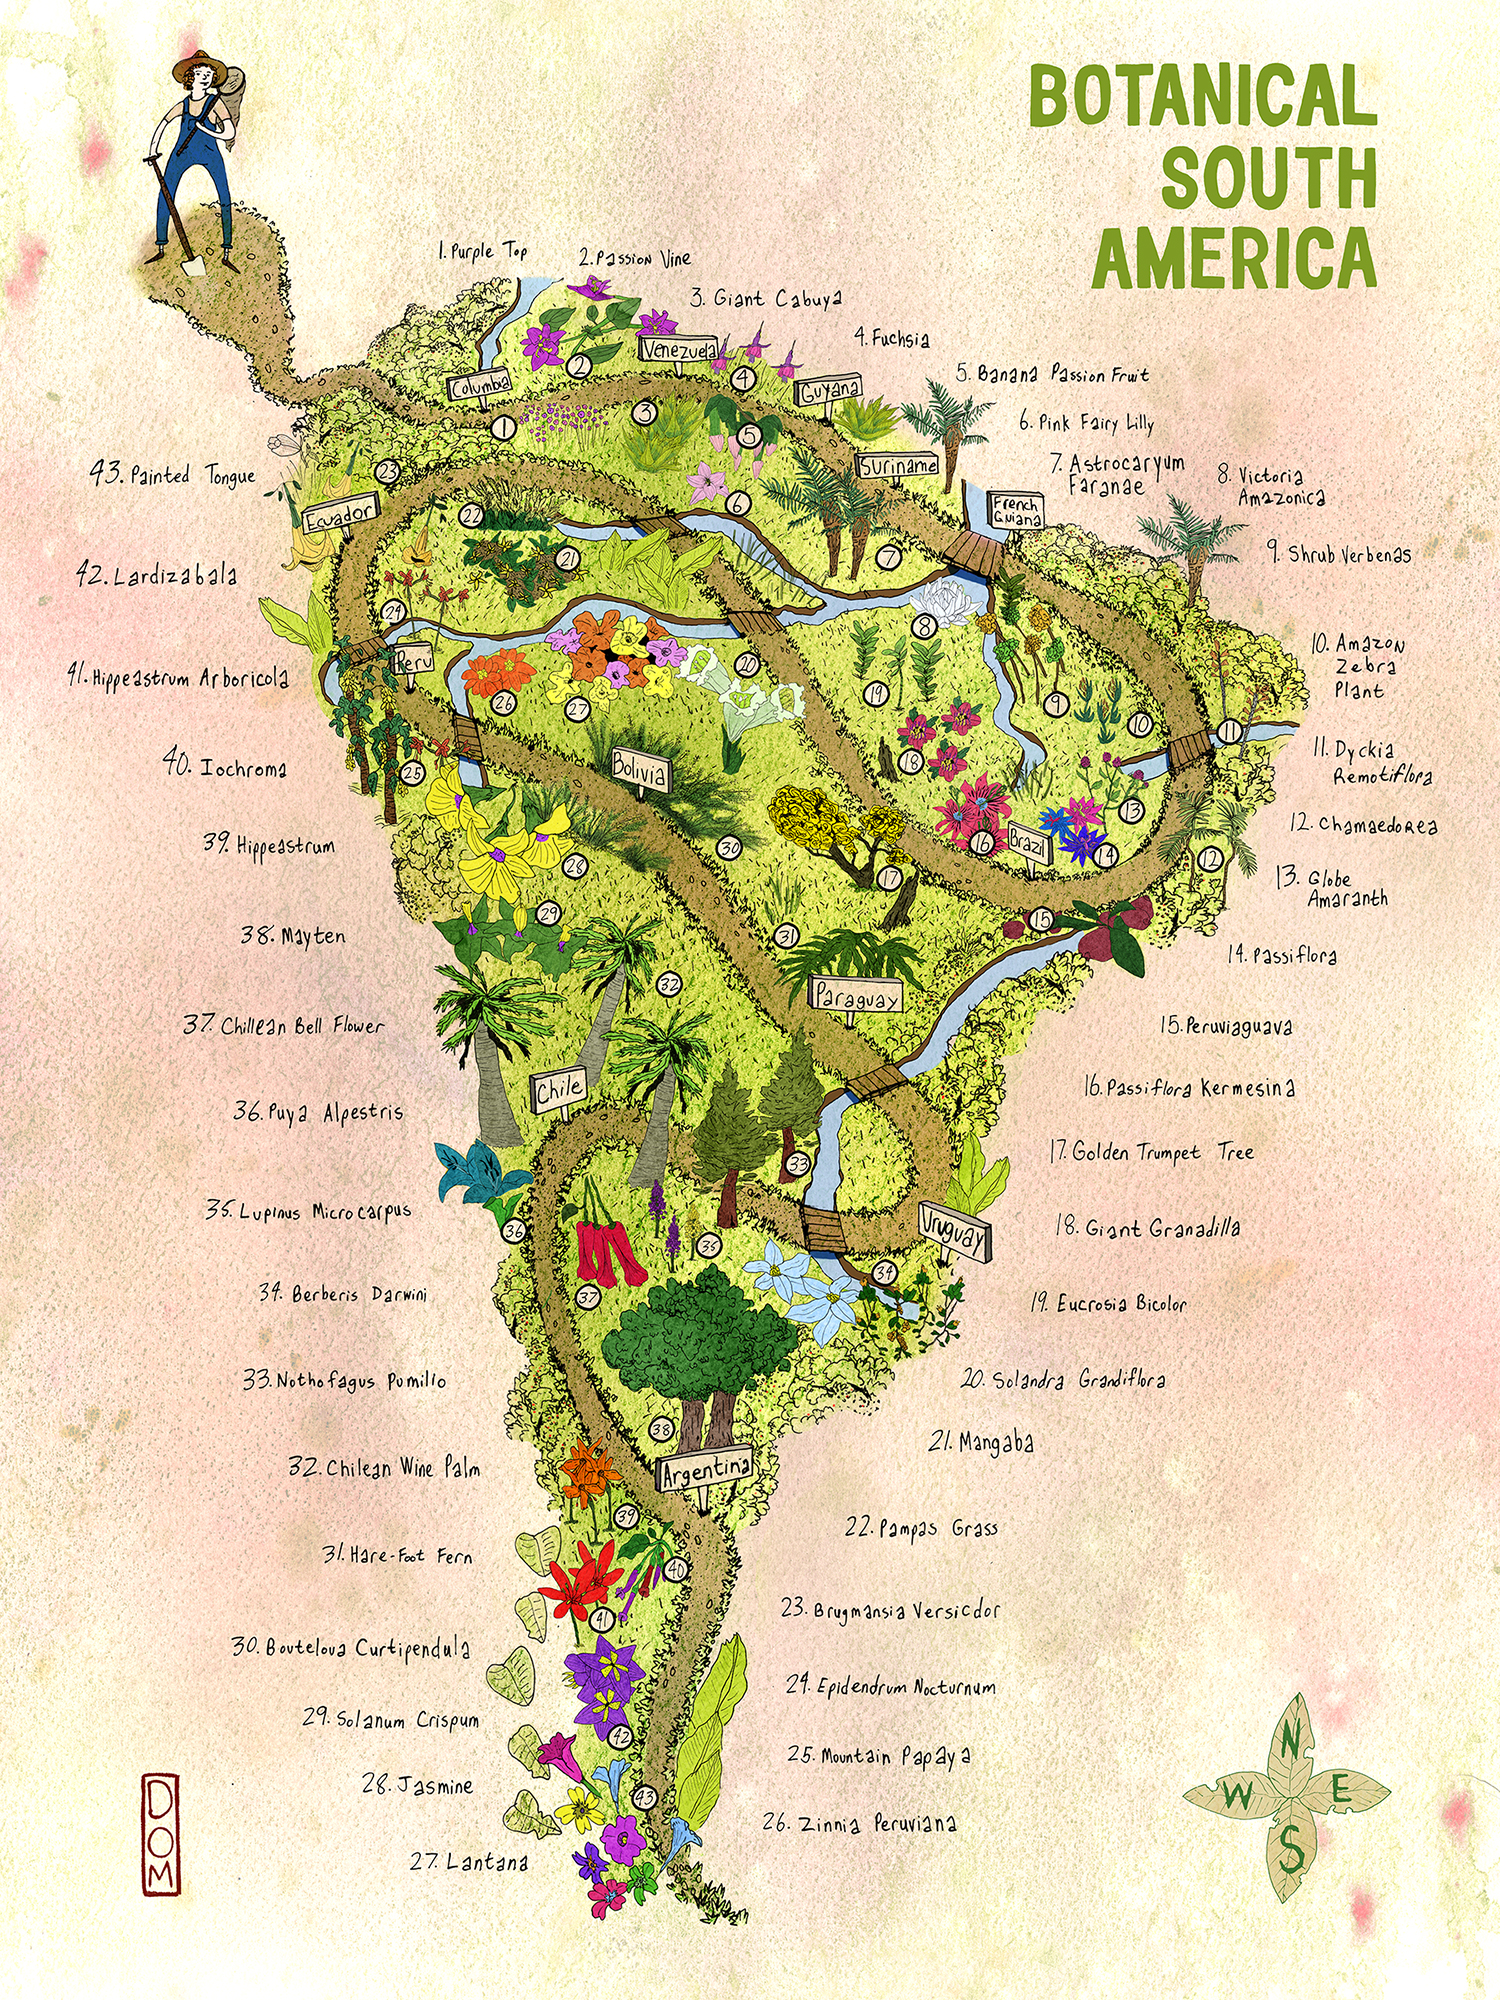 Dom_Civiello_Botanical_South_America _Map_Web.jpg